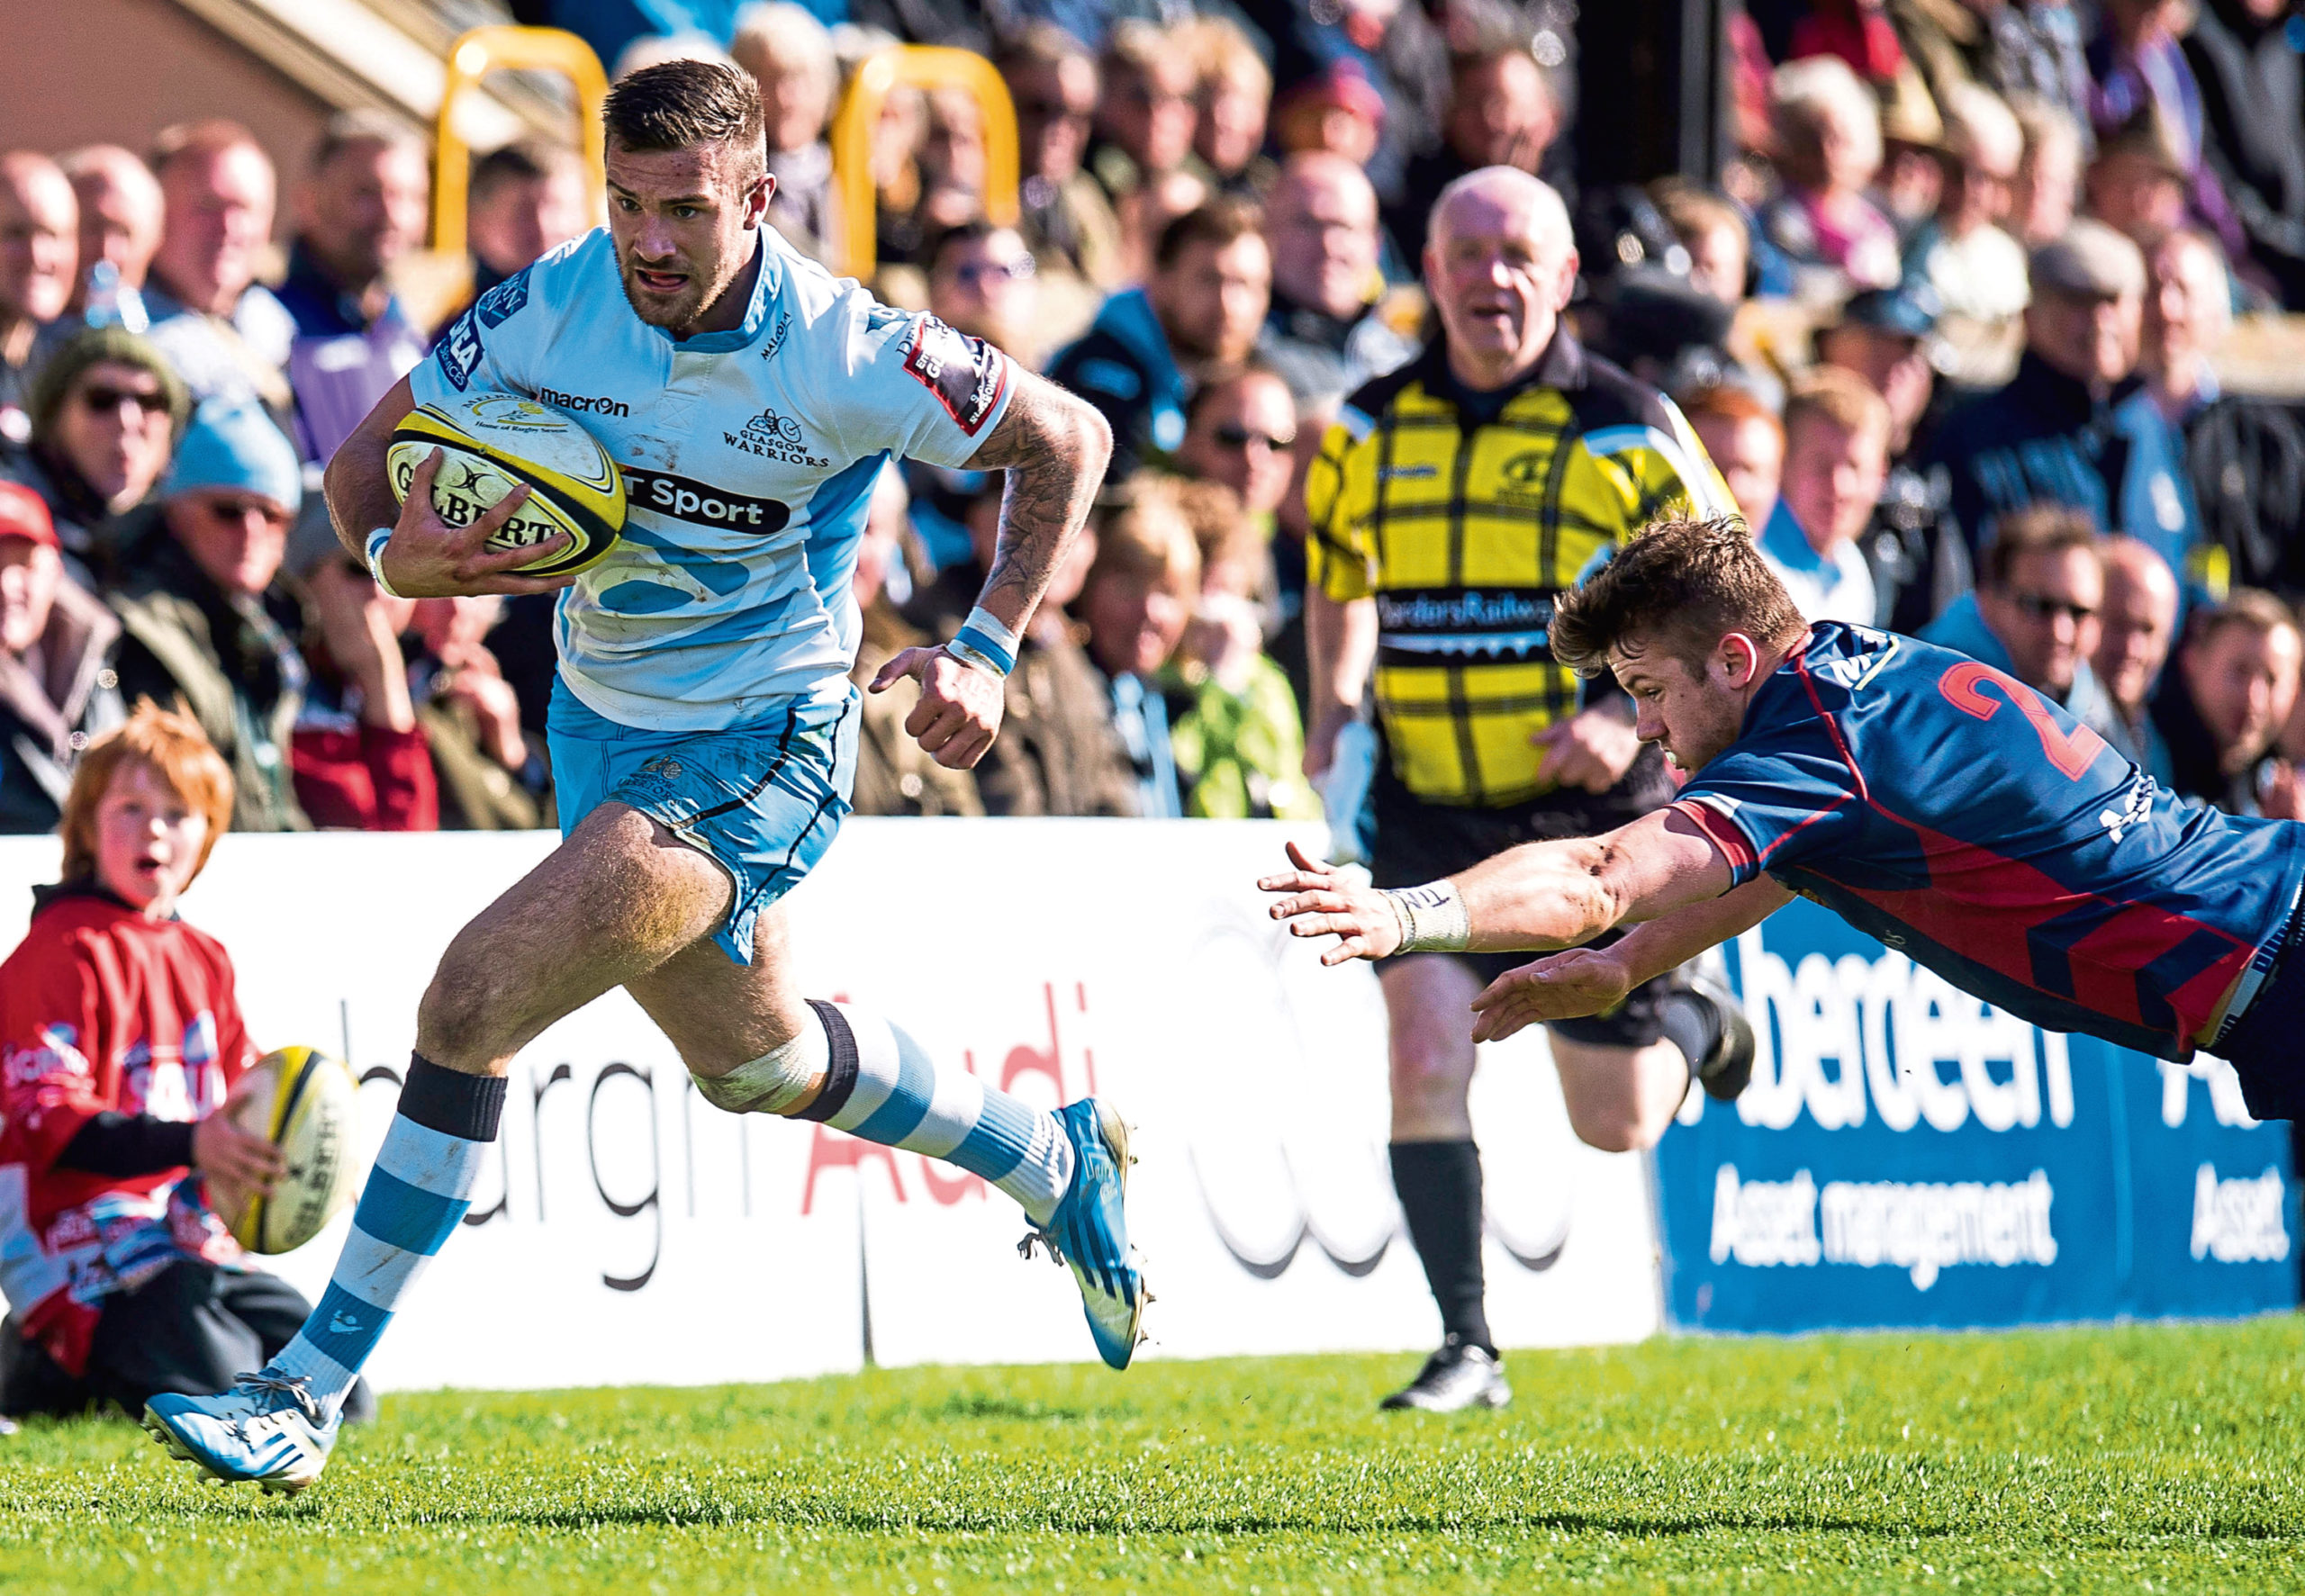 Glasgow Warriors' Rory Hughes (left) in possession at the Melrose 7s tournament.